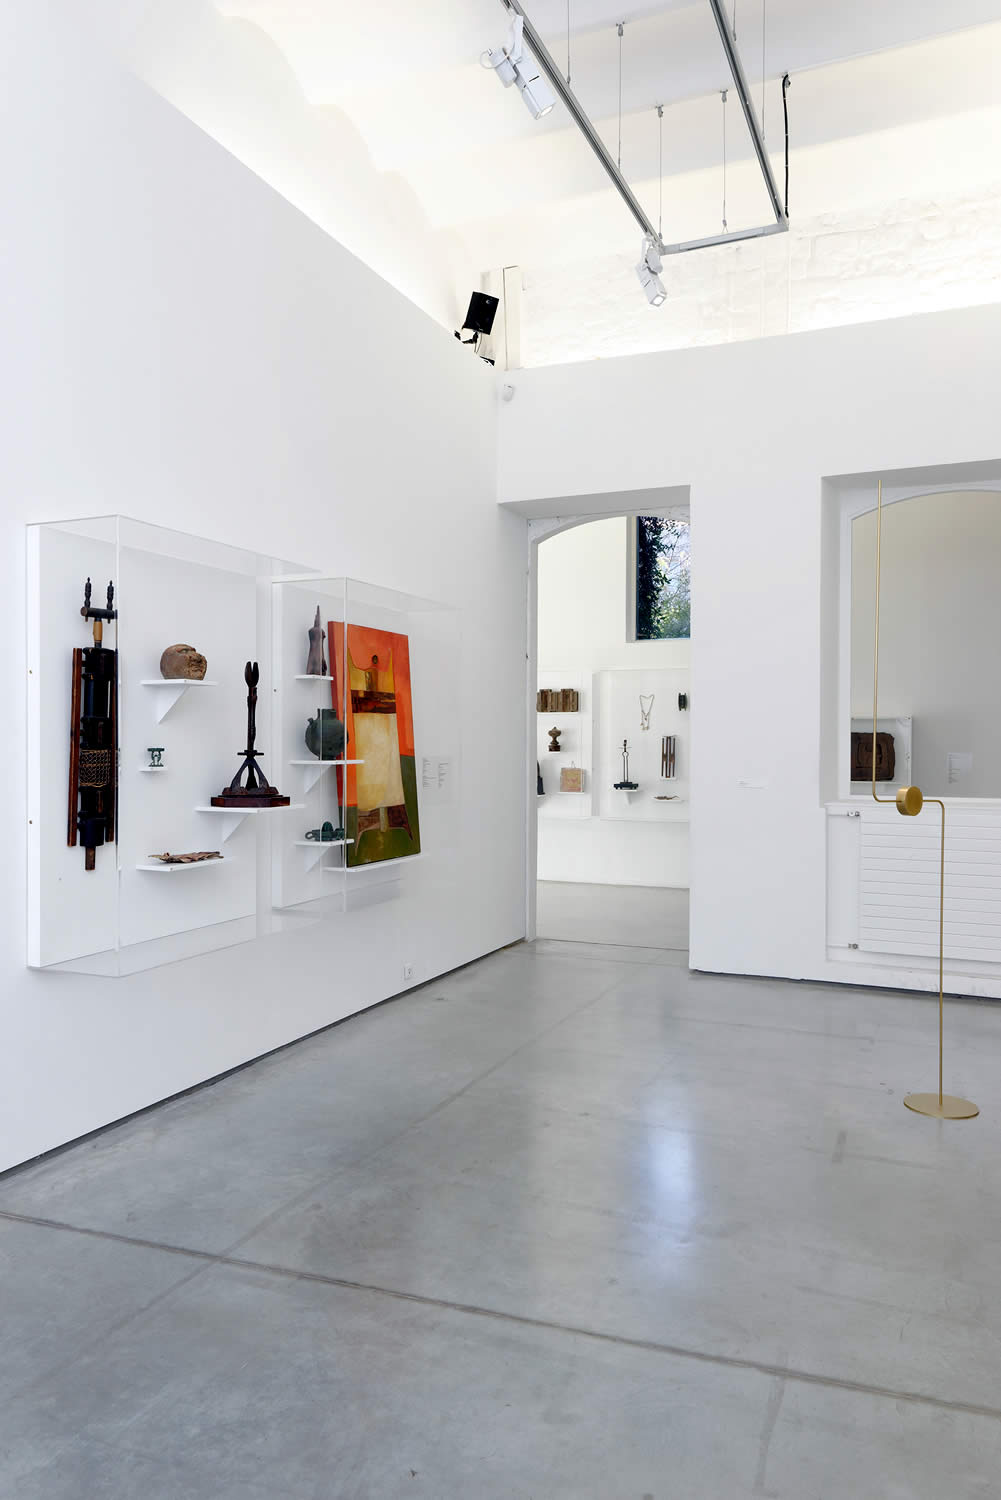 Artifacts from the Civilization of Llhuros are exhibited as part of the PLURIVERS show at La Panacée – Le Centre d'art contemporain in Montpellier, France.